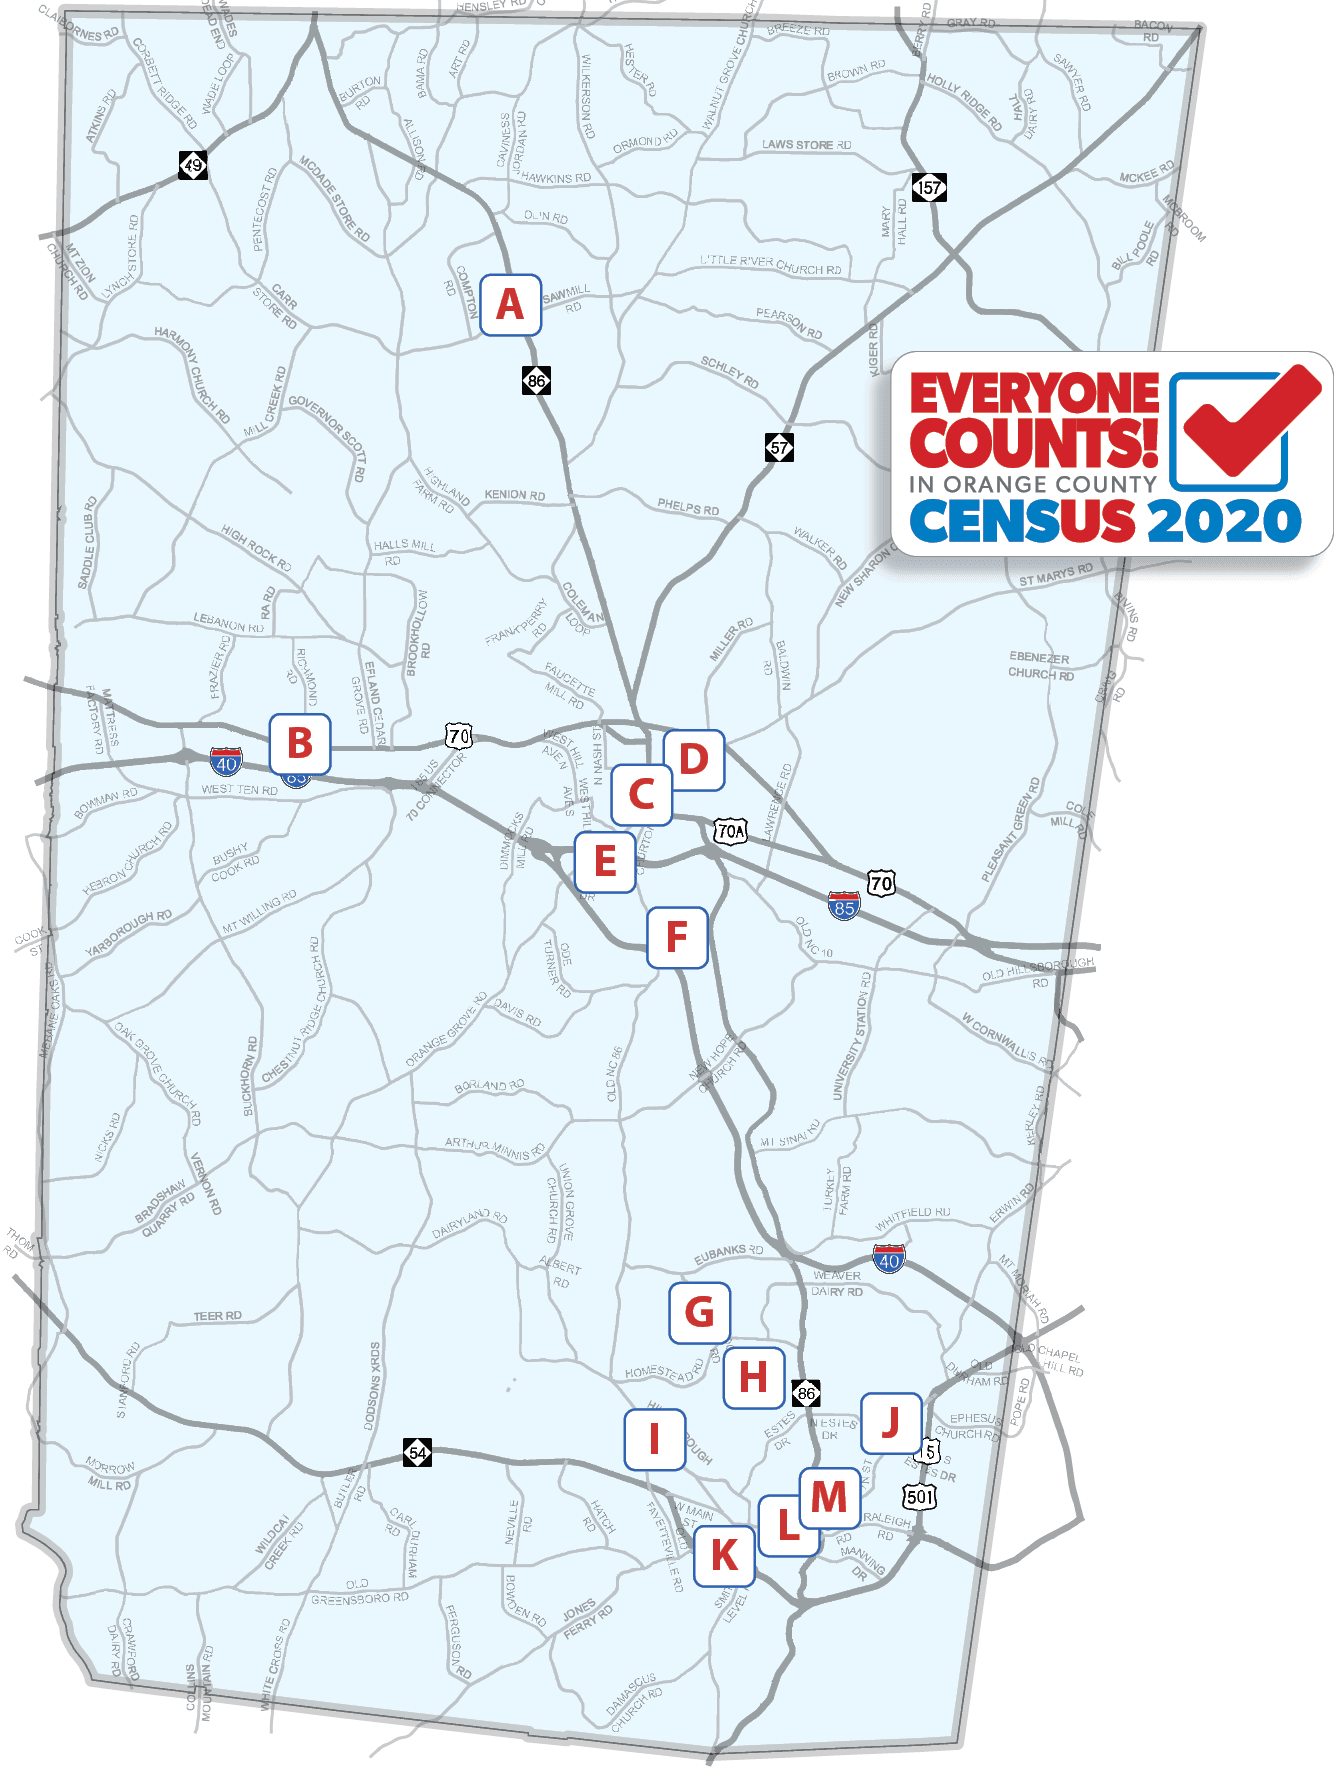 Graphic of Be Counted Sites locations